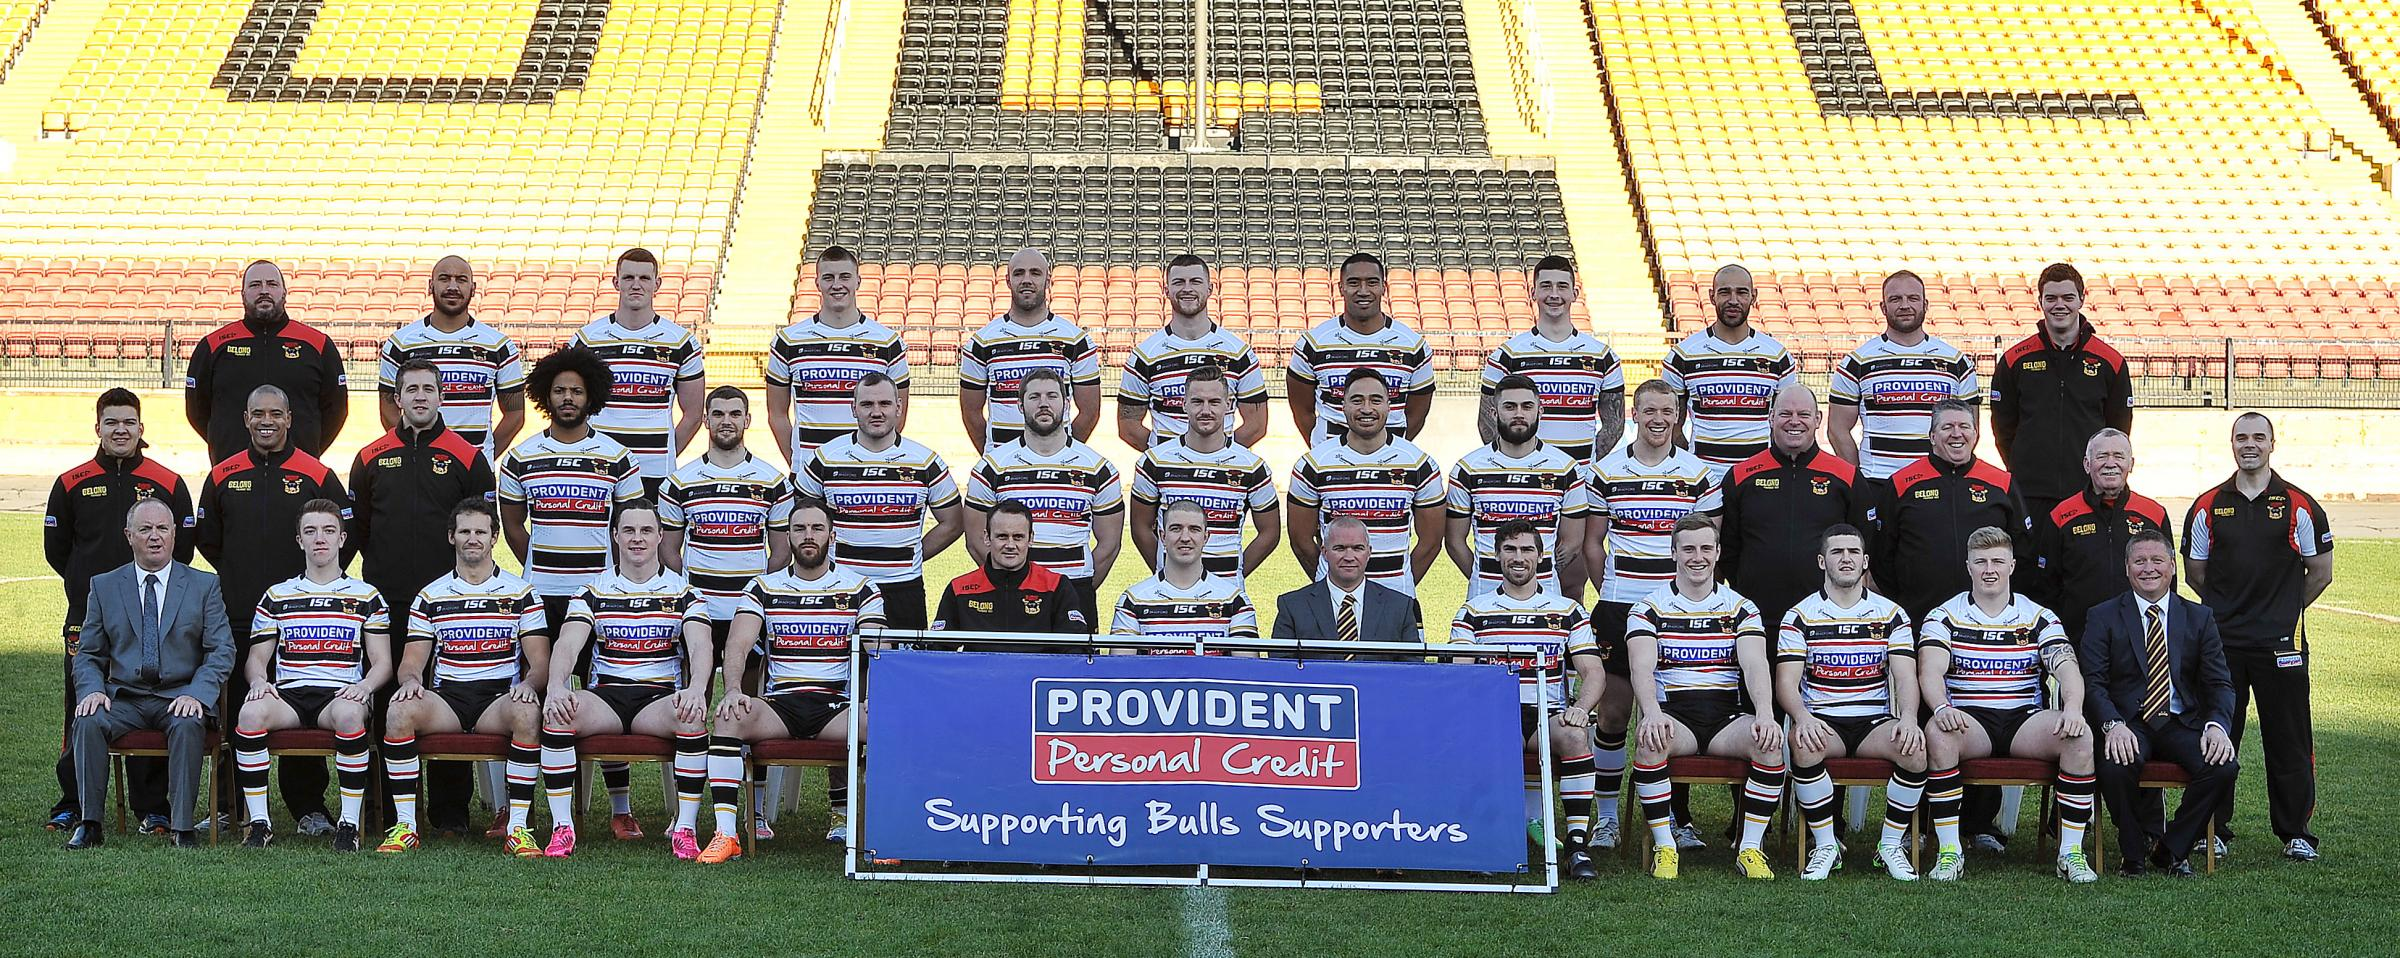 Ownership saga nearing 'closure' says Bradford Bulls chief Moore